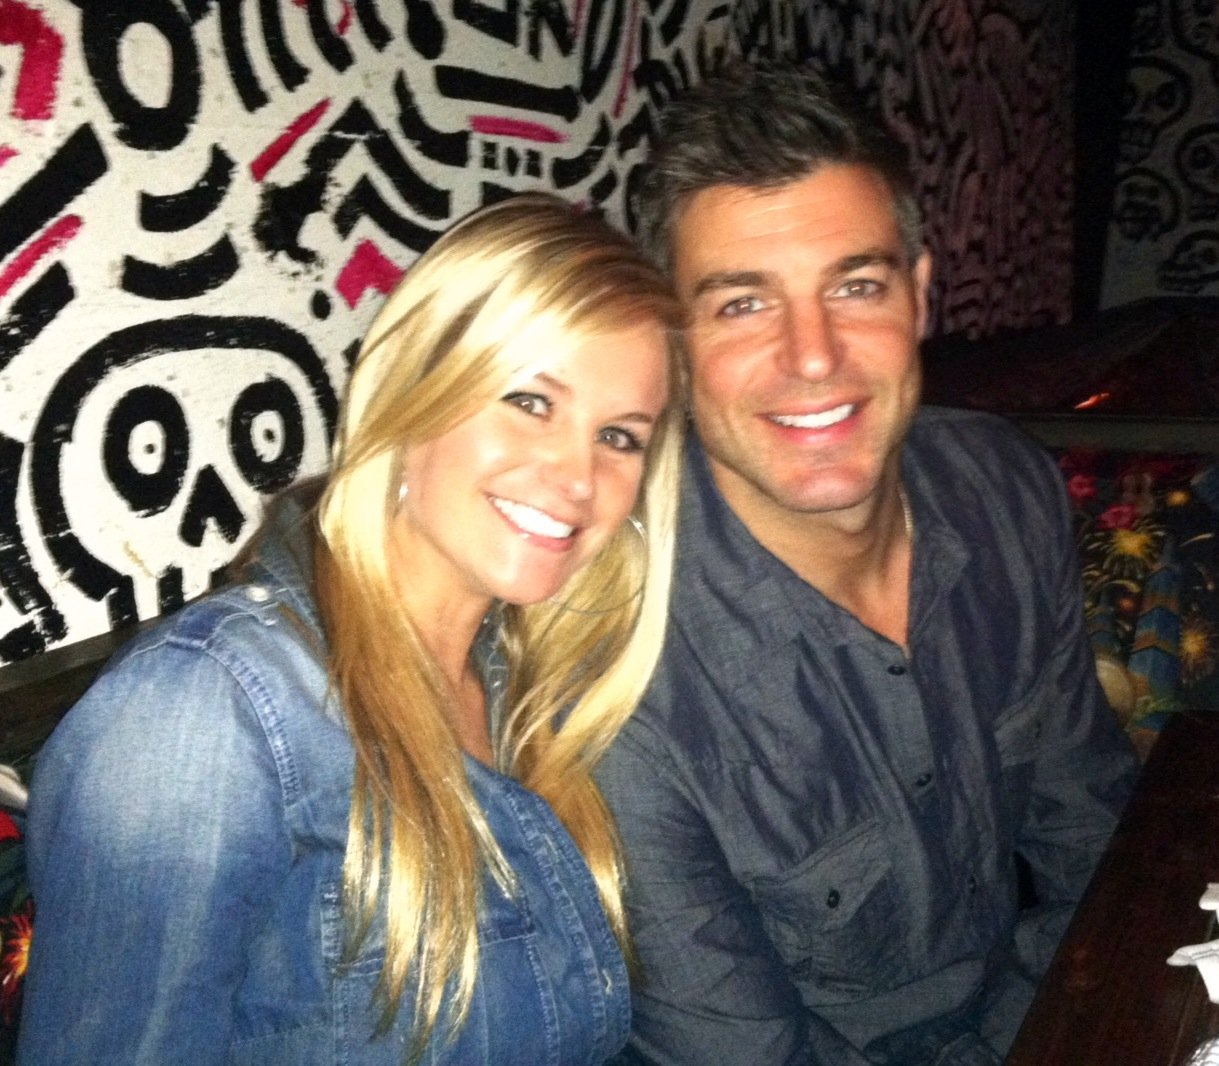 Cupid's Pulse Article: 'Big Brother' Couple Jeff Schroeder and Jordan Lloyd Discuss Living Together, Dieting and Watching 'The Bachelor'